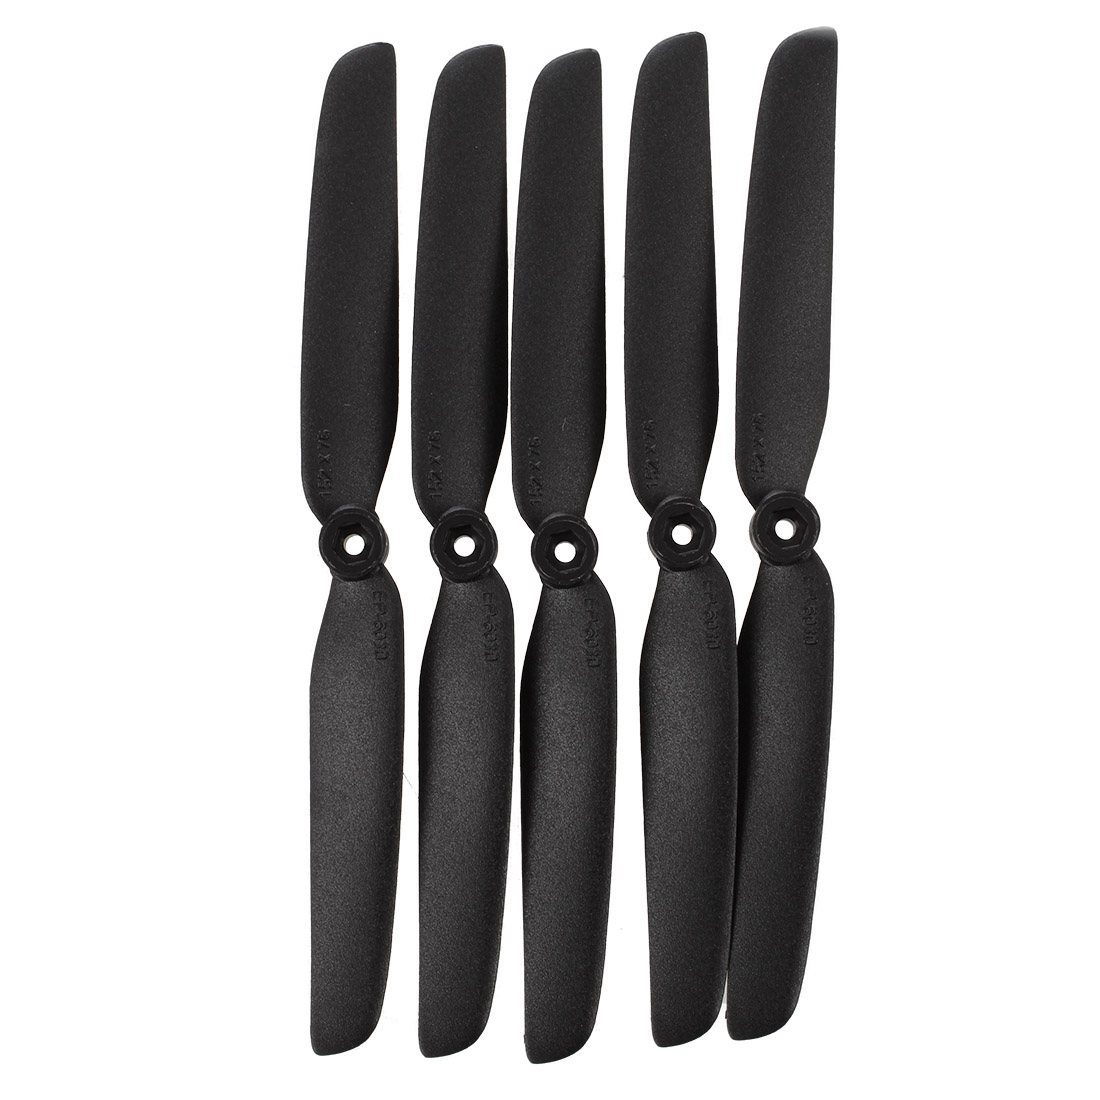 5 X Electric RC Plane Gray Propellers Props 2 Blade 152x76mm 6x3 6030